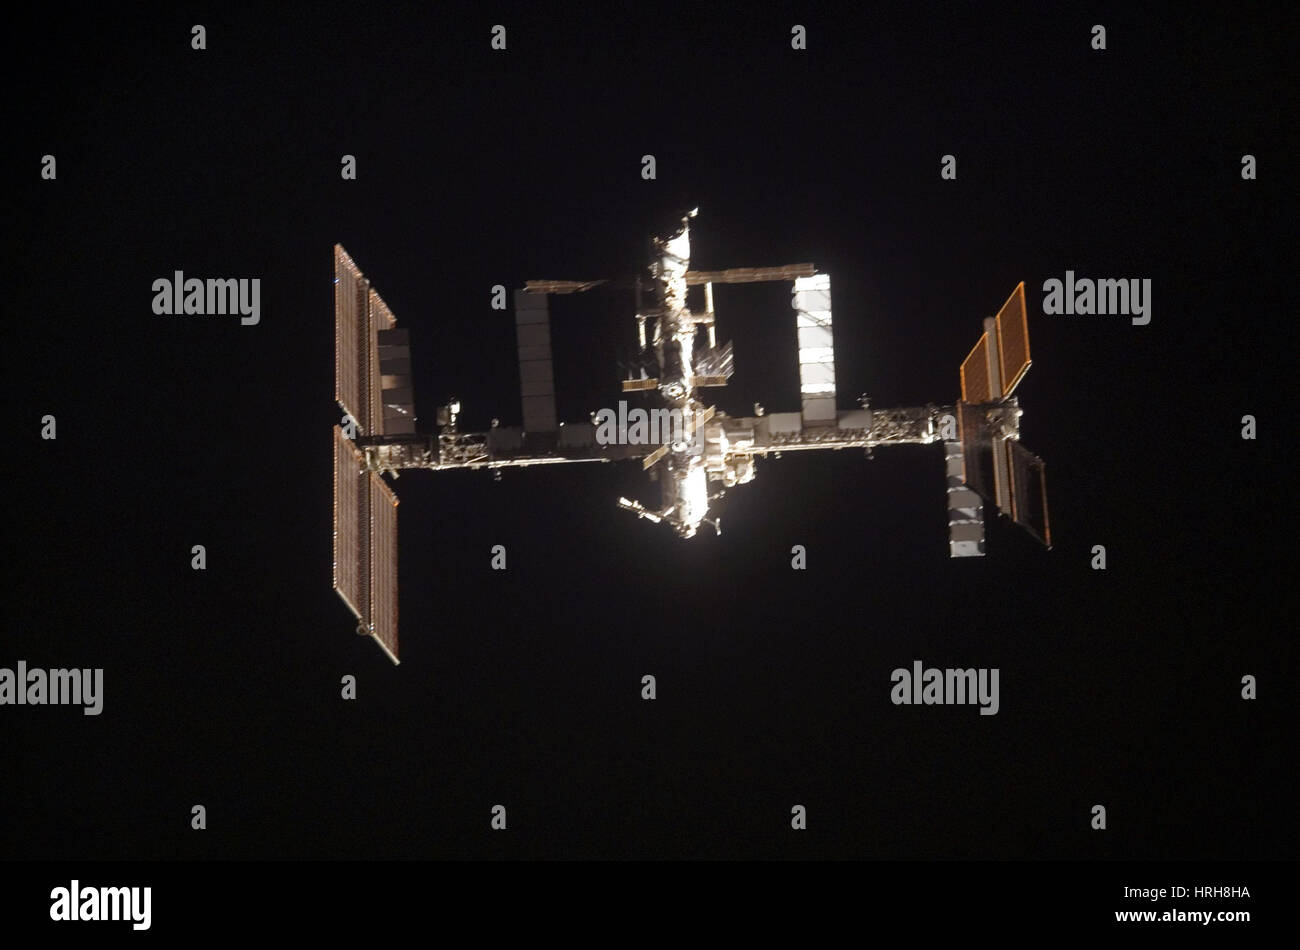 SST-120, International Space Station, 2007 - Stock Image